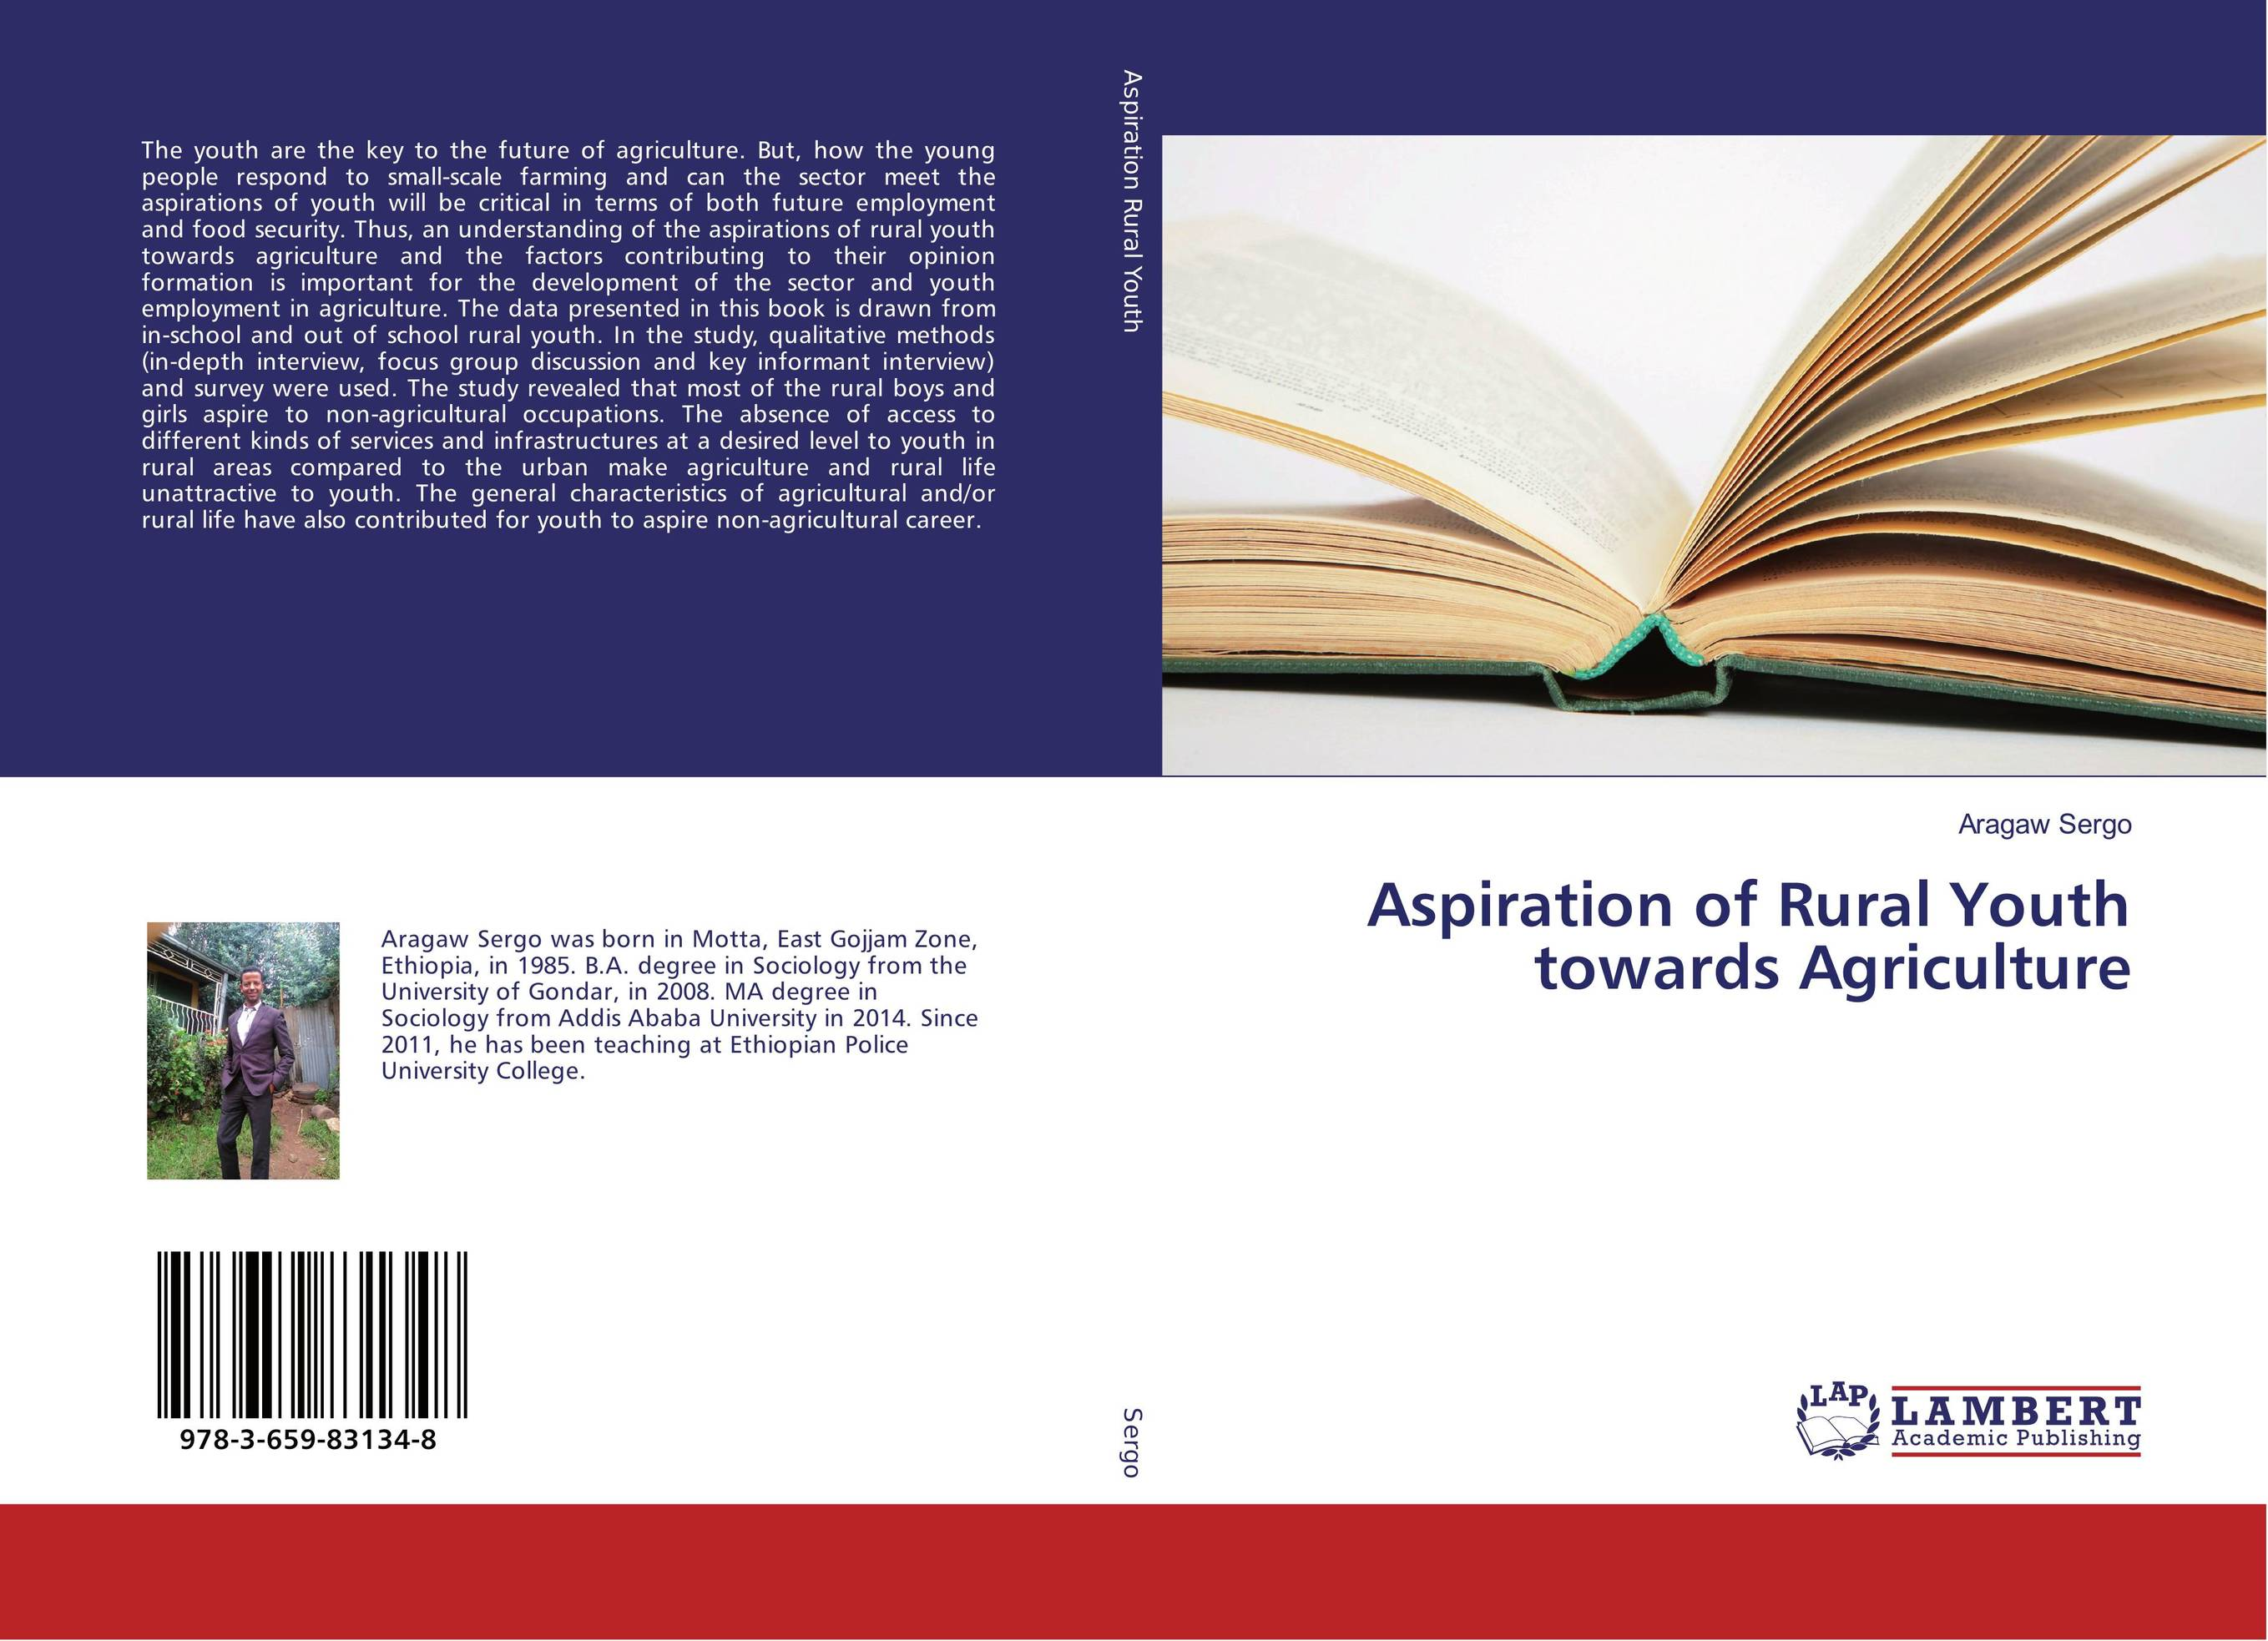 Aspiration of Rural Youth towards Agriculture restructuring agriculture and adaptive processes in rural areas